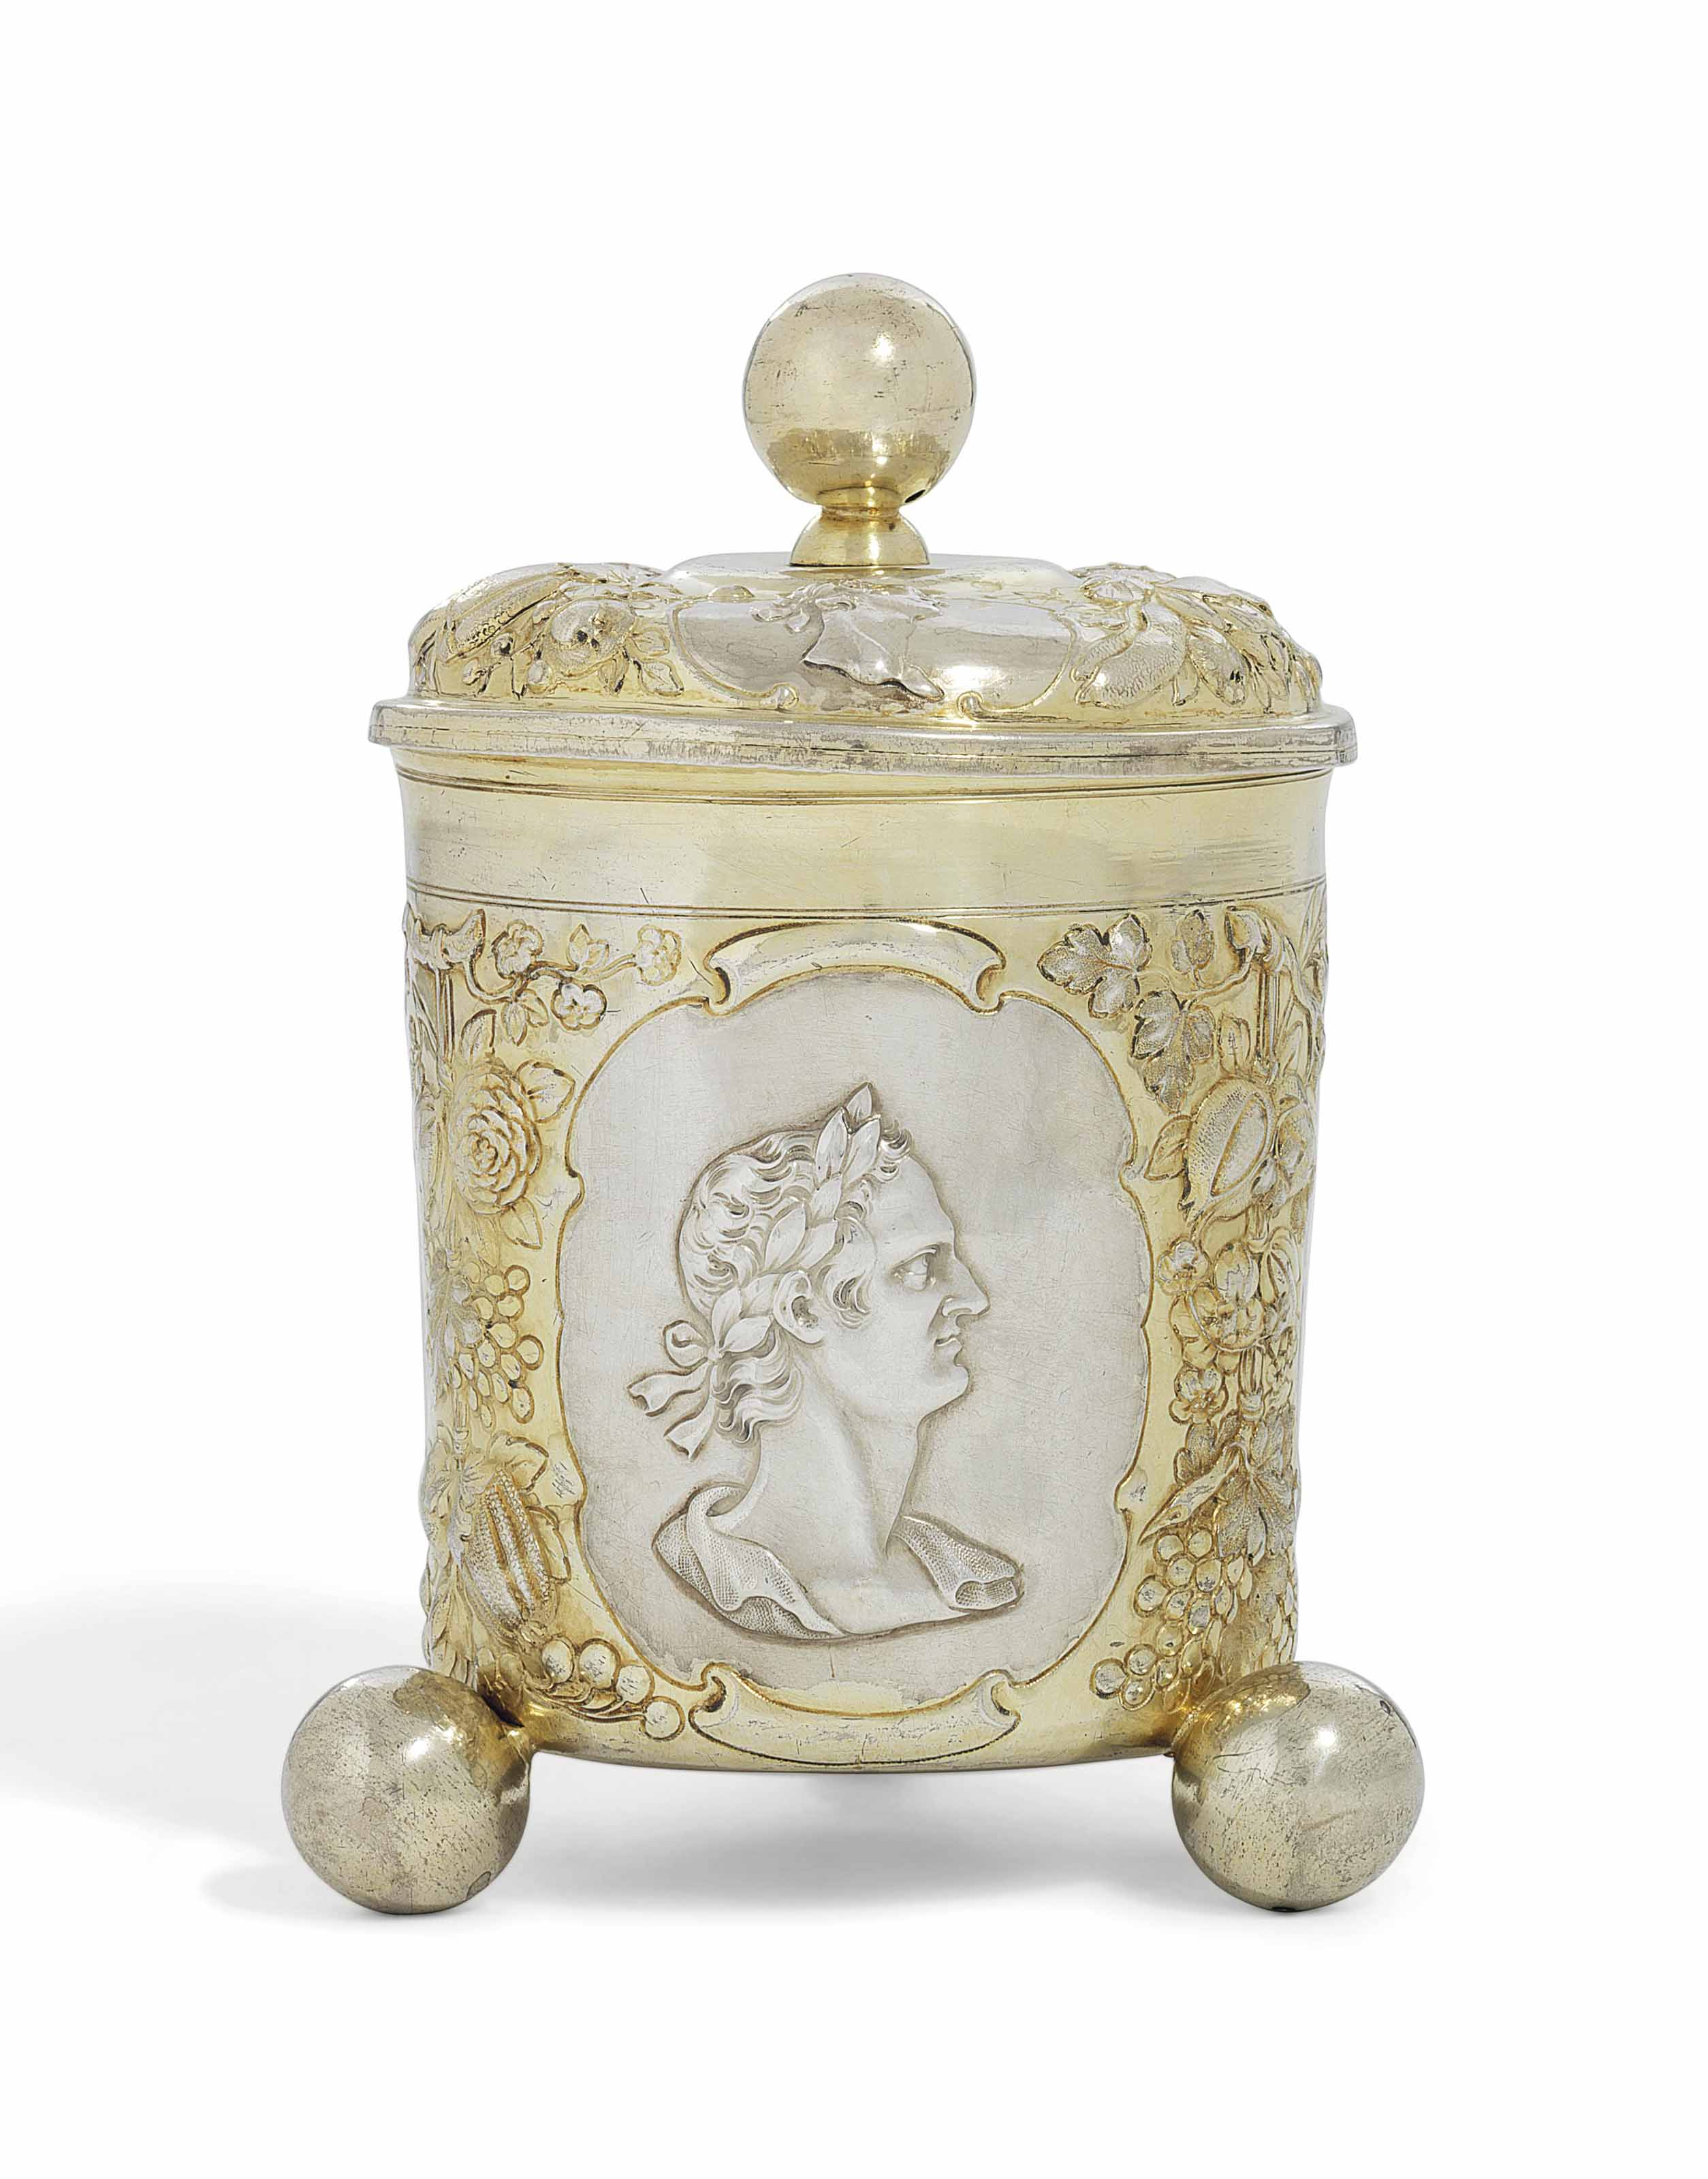 A GERMAN PARCEL-GILT SILVER CUP AND COVER